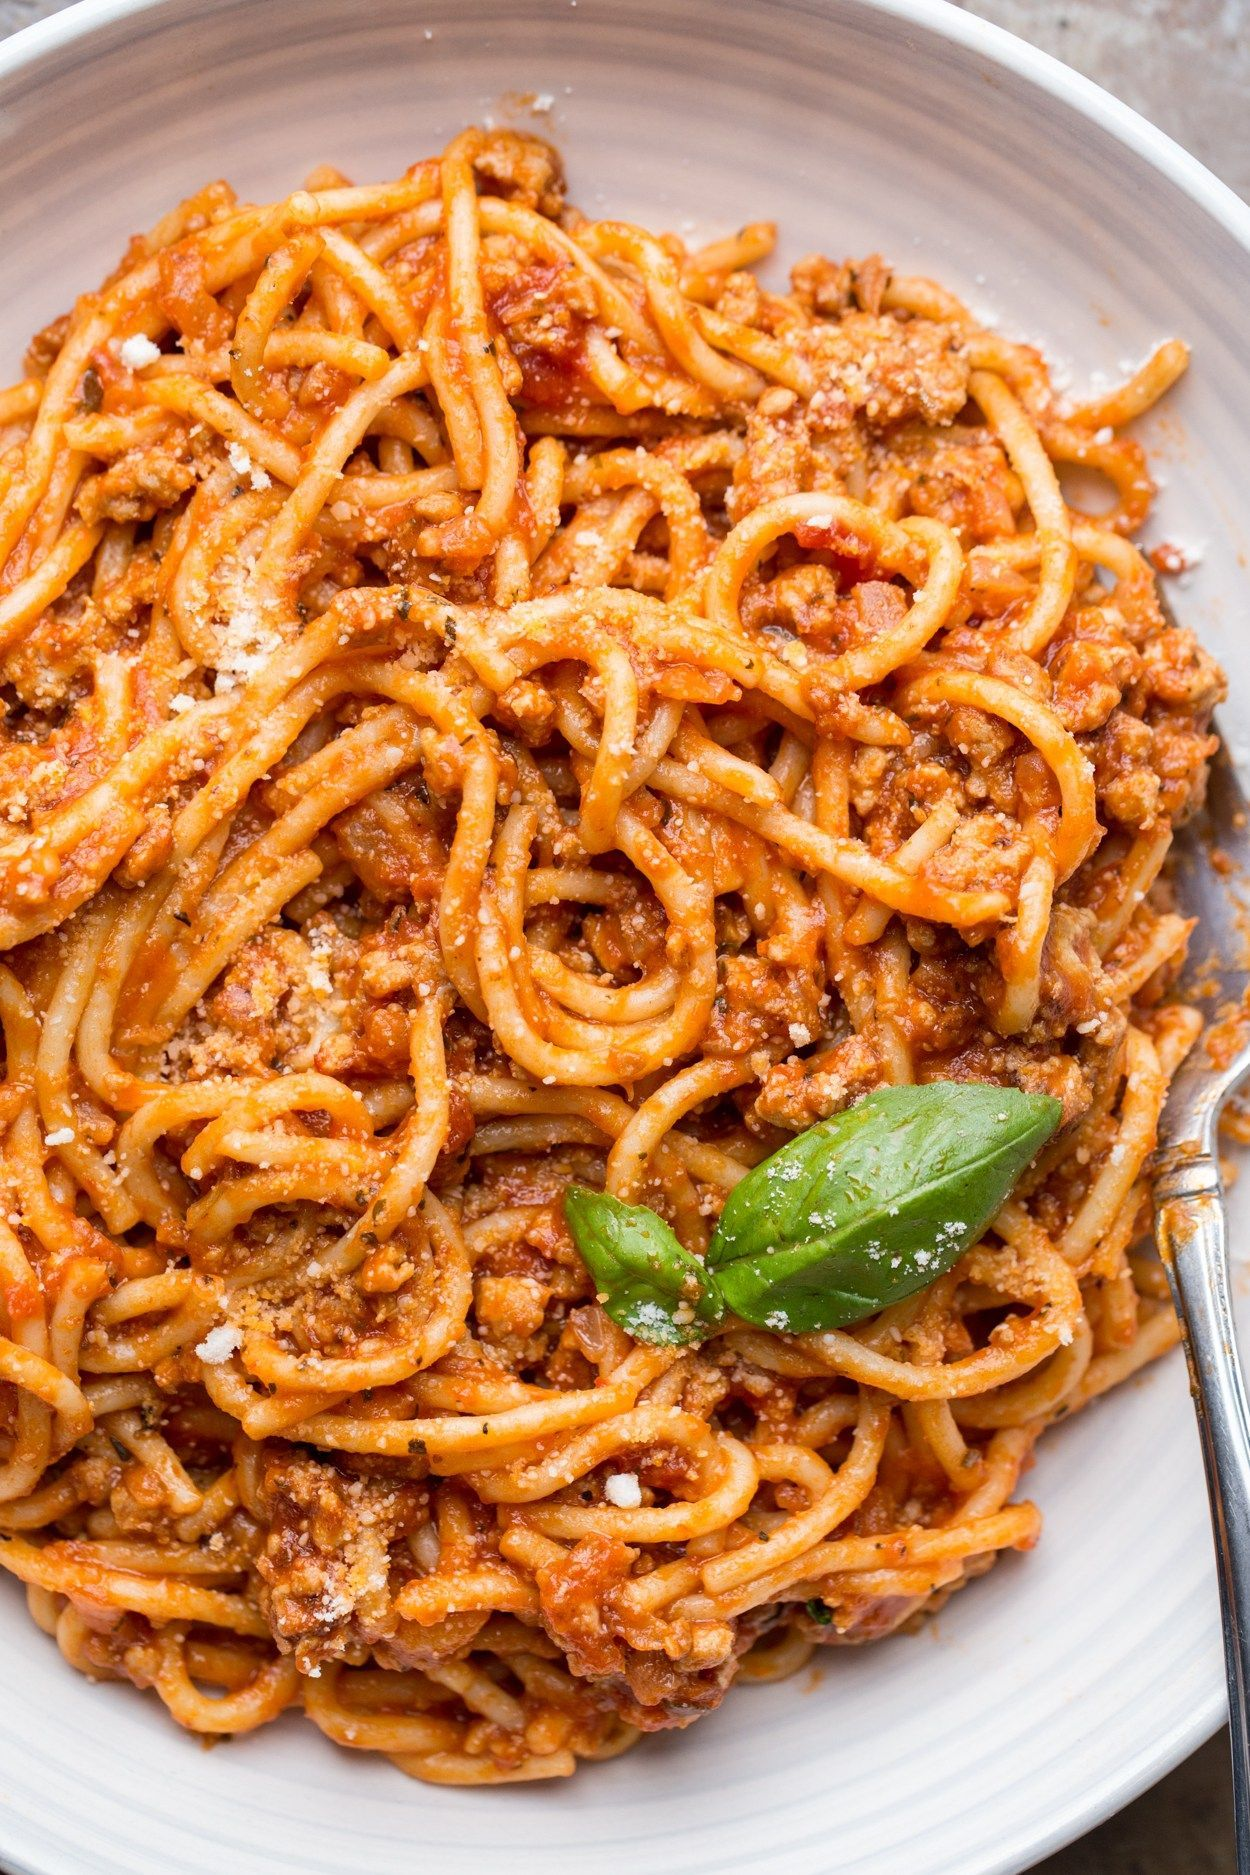 Delicious Spaghetti Minutes Recipe Dinner Meaty Sauce Under With Made In Ade Spaghetti Recipes Healthy Spaghetti Recipes Easy Best Spaghetti Recipe